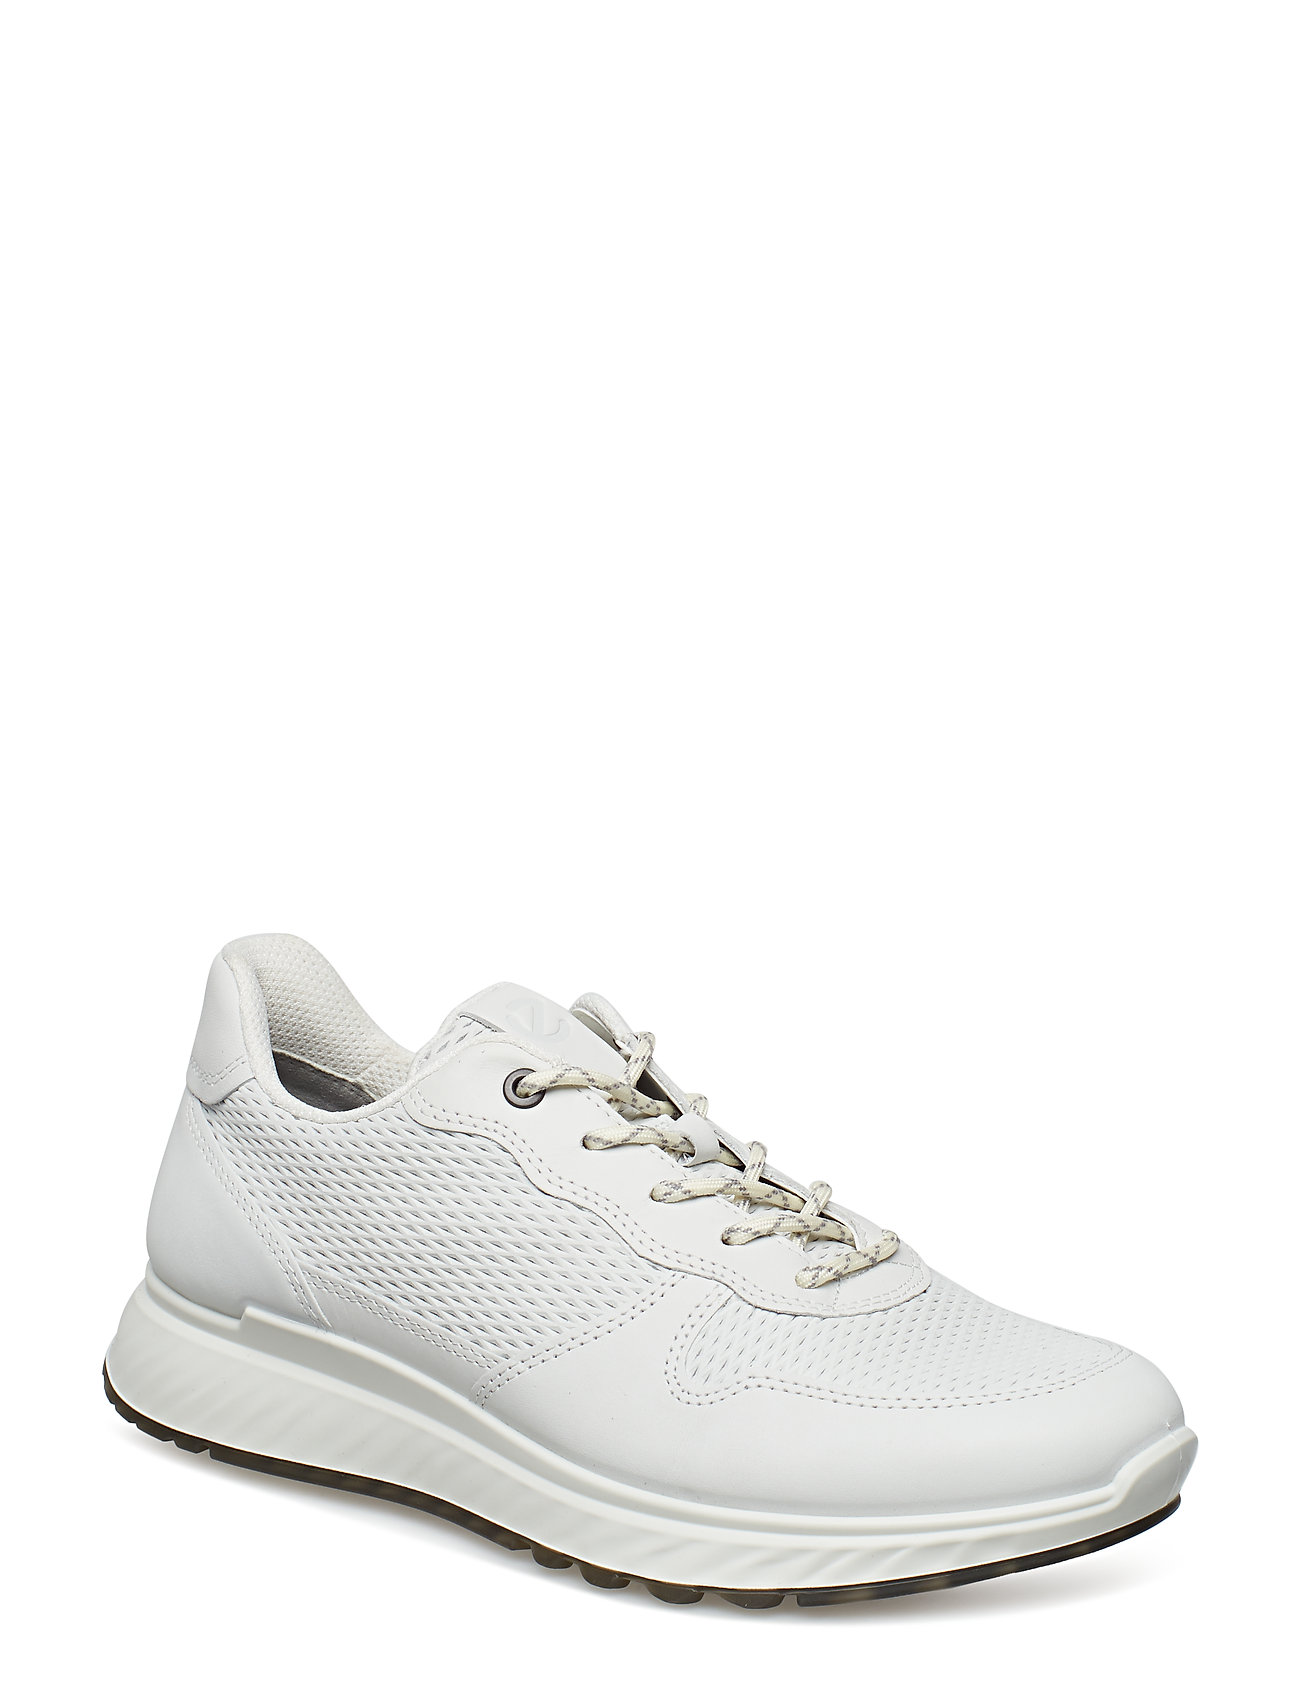 Image of St.1 M Low-top Sneakers Hvid ECCO (3093079367)